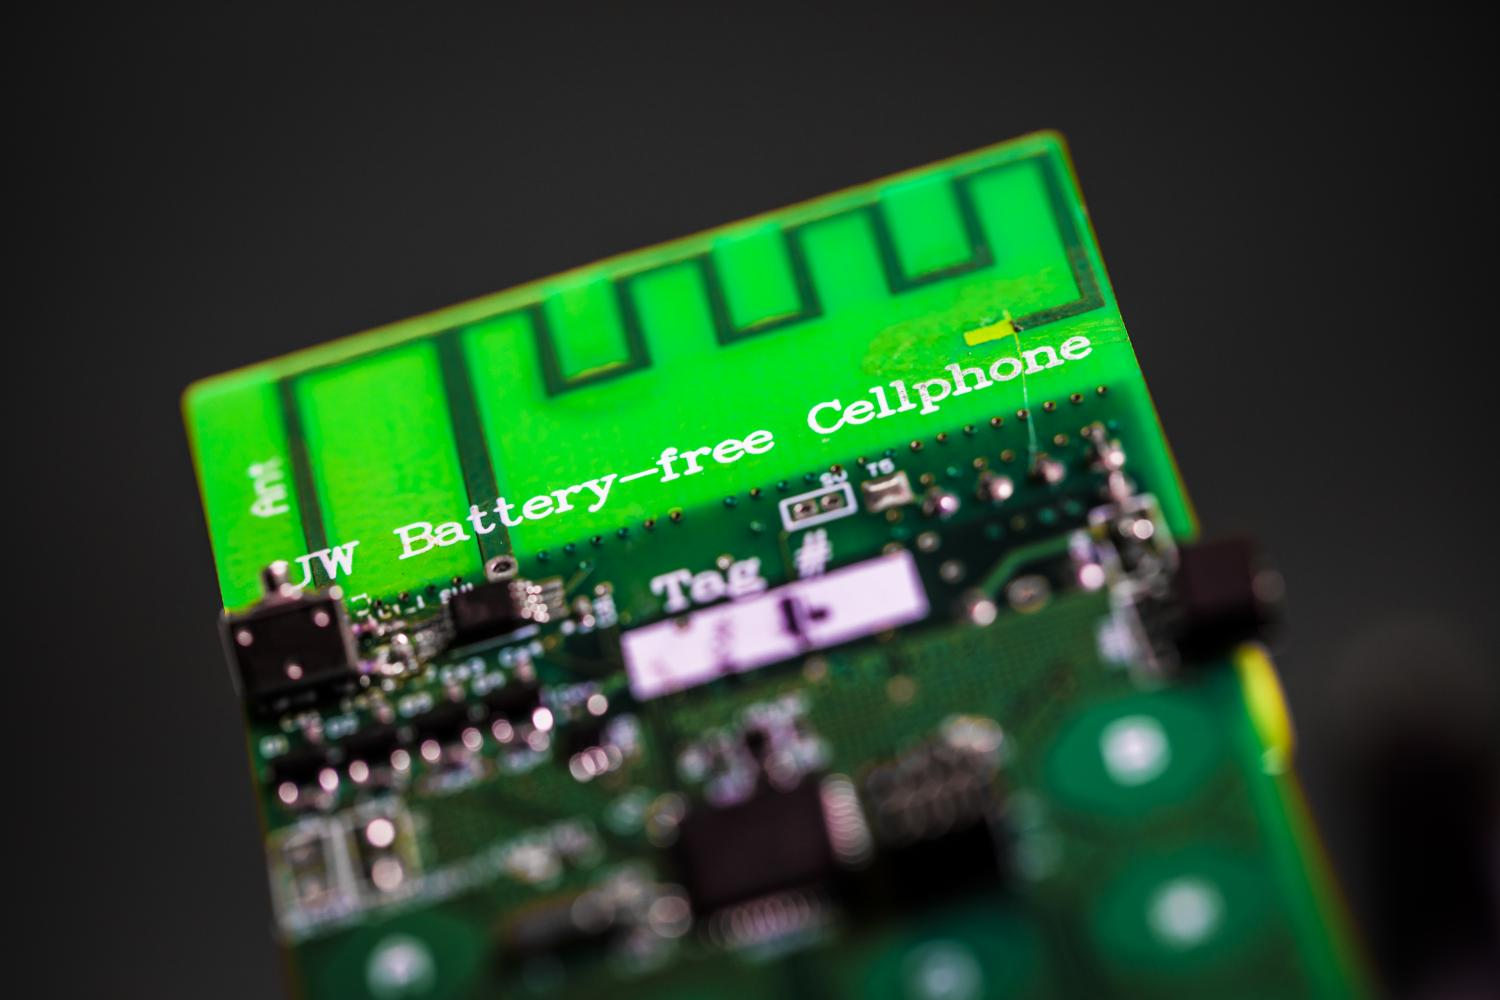 First Battery Free Cellphone Makes Calls By Harvesting Ambient Power Winged Insects Made From Old Computer Circuit Boards And Electronics Uw Engineers Have Designed The That Can Send Receive Using Only A Few Microwatts Of